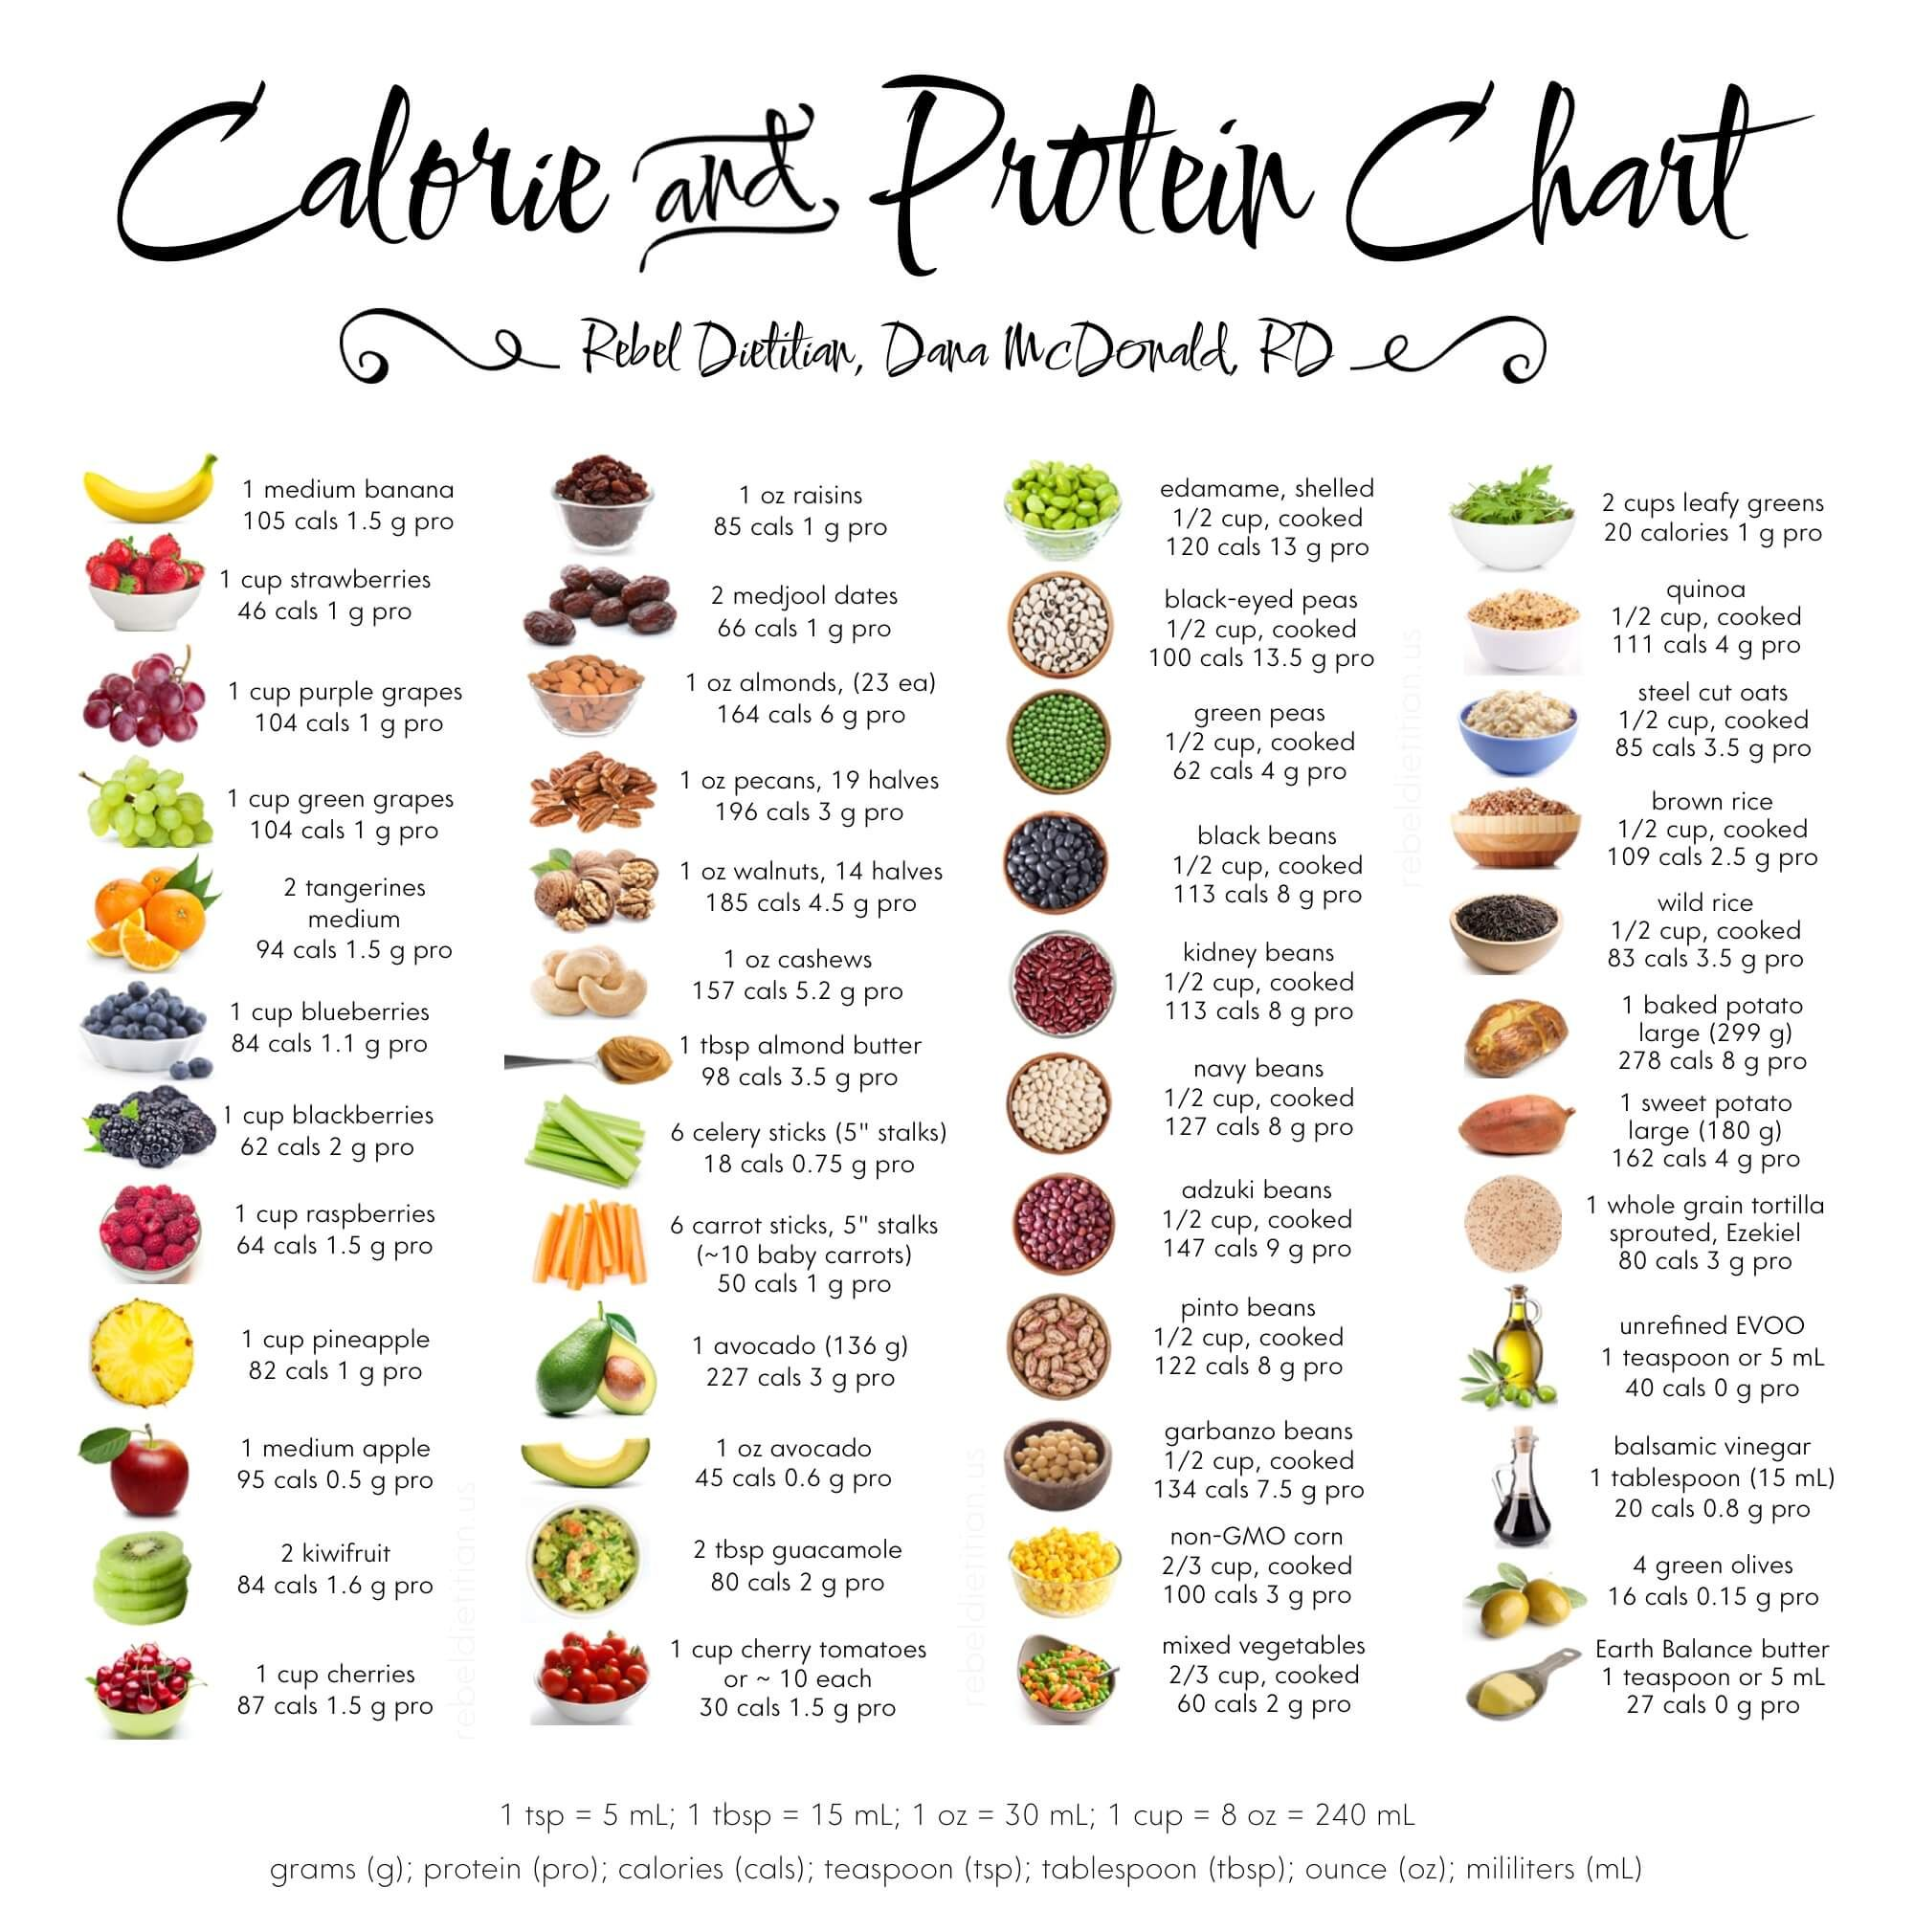 Posters protein chart chart and plant based protein for Whole foods fish on sale this week